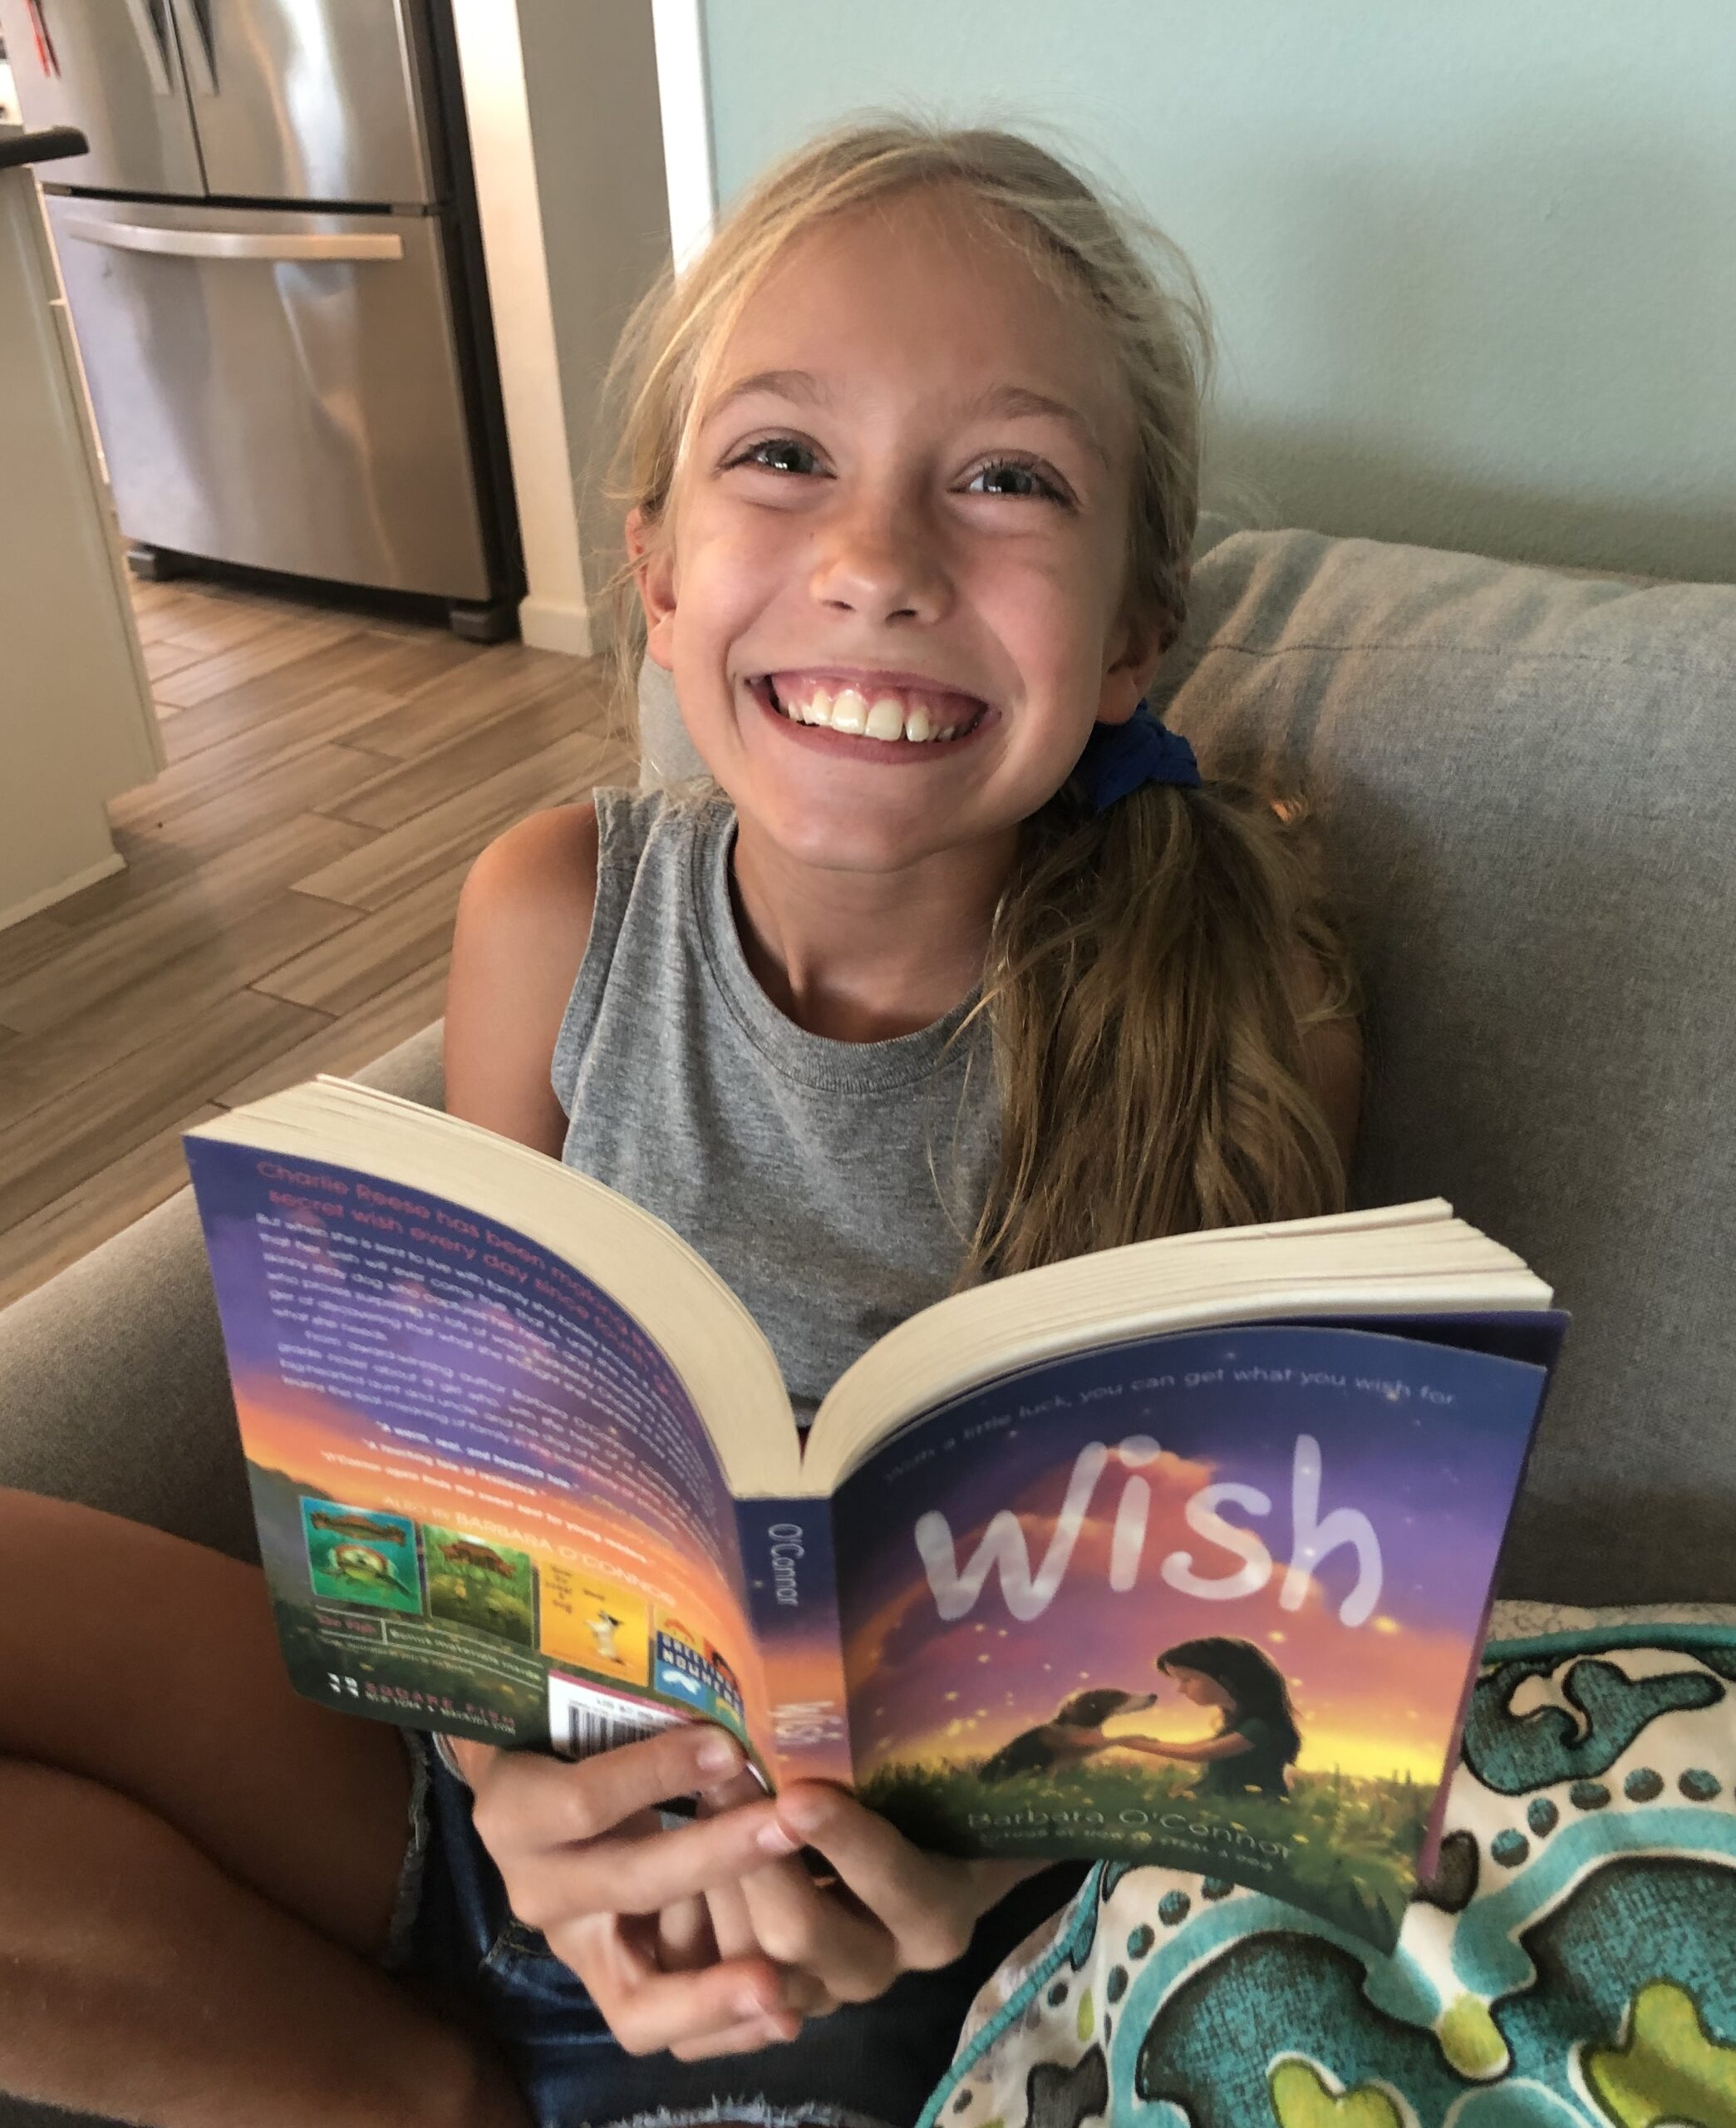 Blond haired girl reading Wish for the children's book review on it.